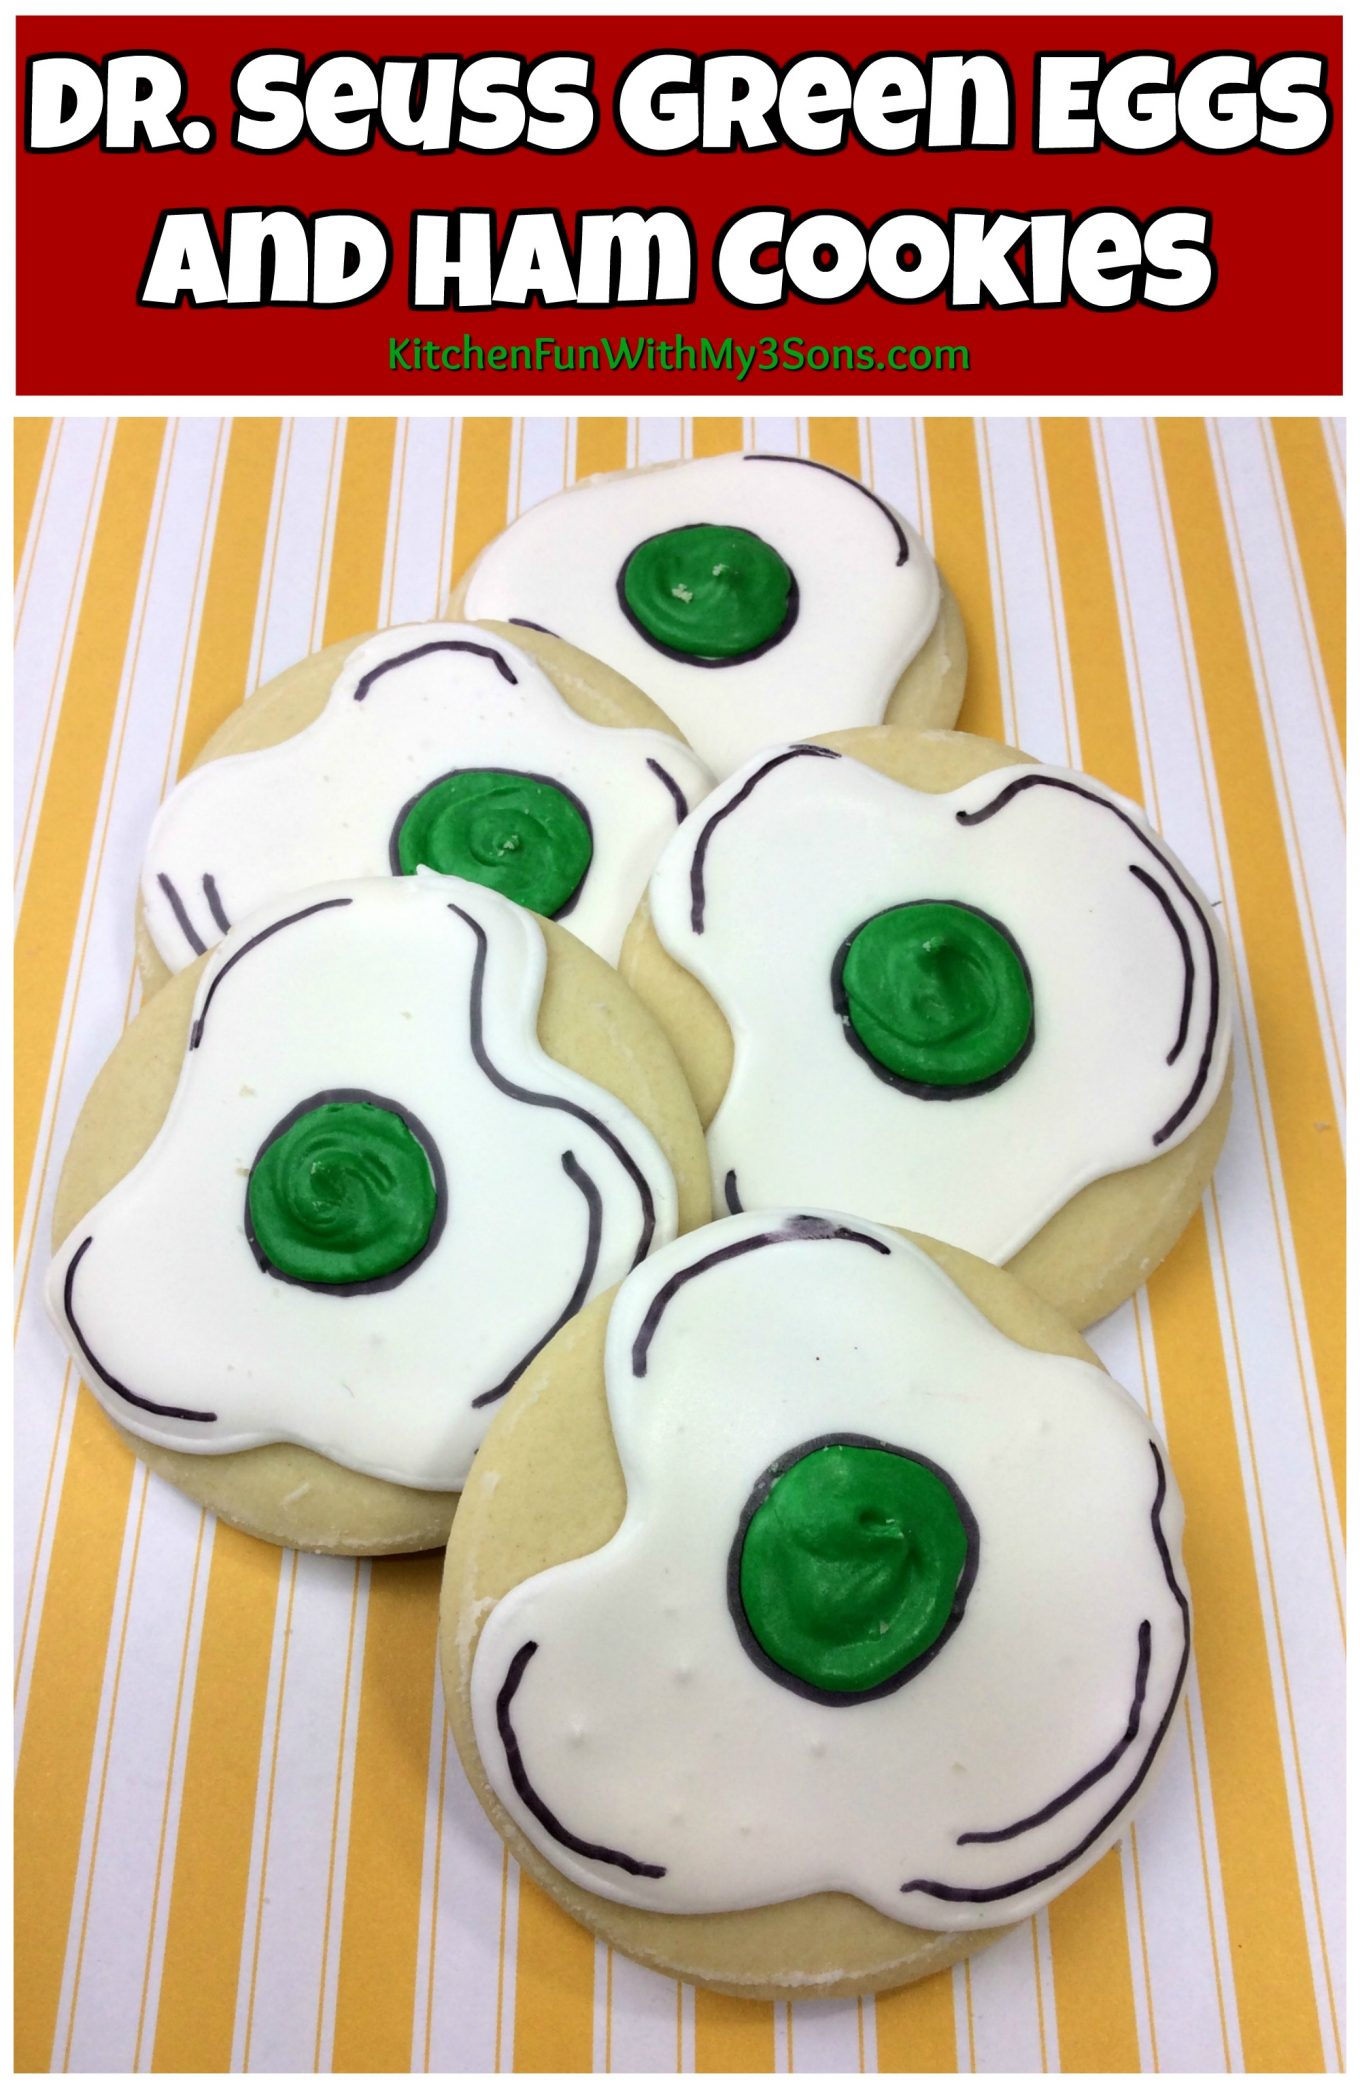 Green Eggs And Ham Dr Seuss Cookies